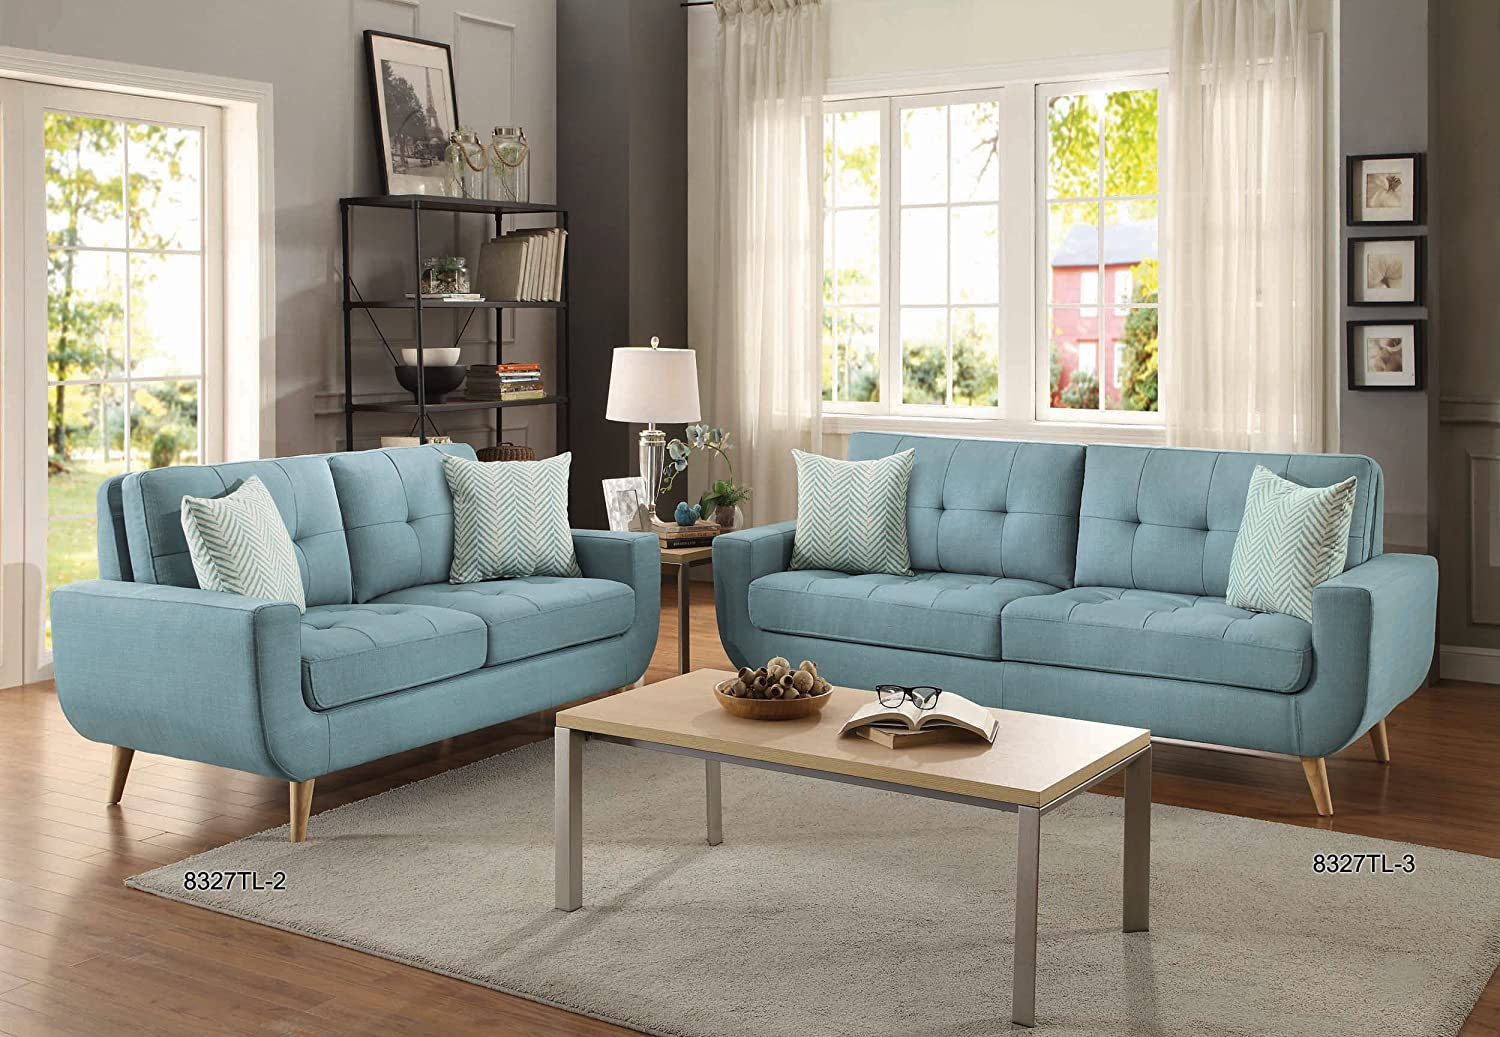 Amazon.com: Homelegance Deryn Mid Century Modern Sofa With Tufted Back And  Two Herringbone Throw Pillows, Teal: Kitchen U0026 Dining